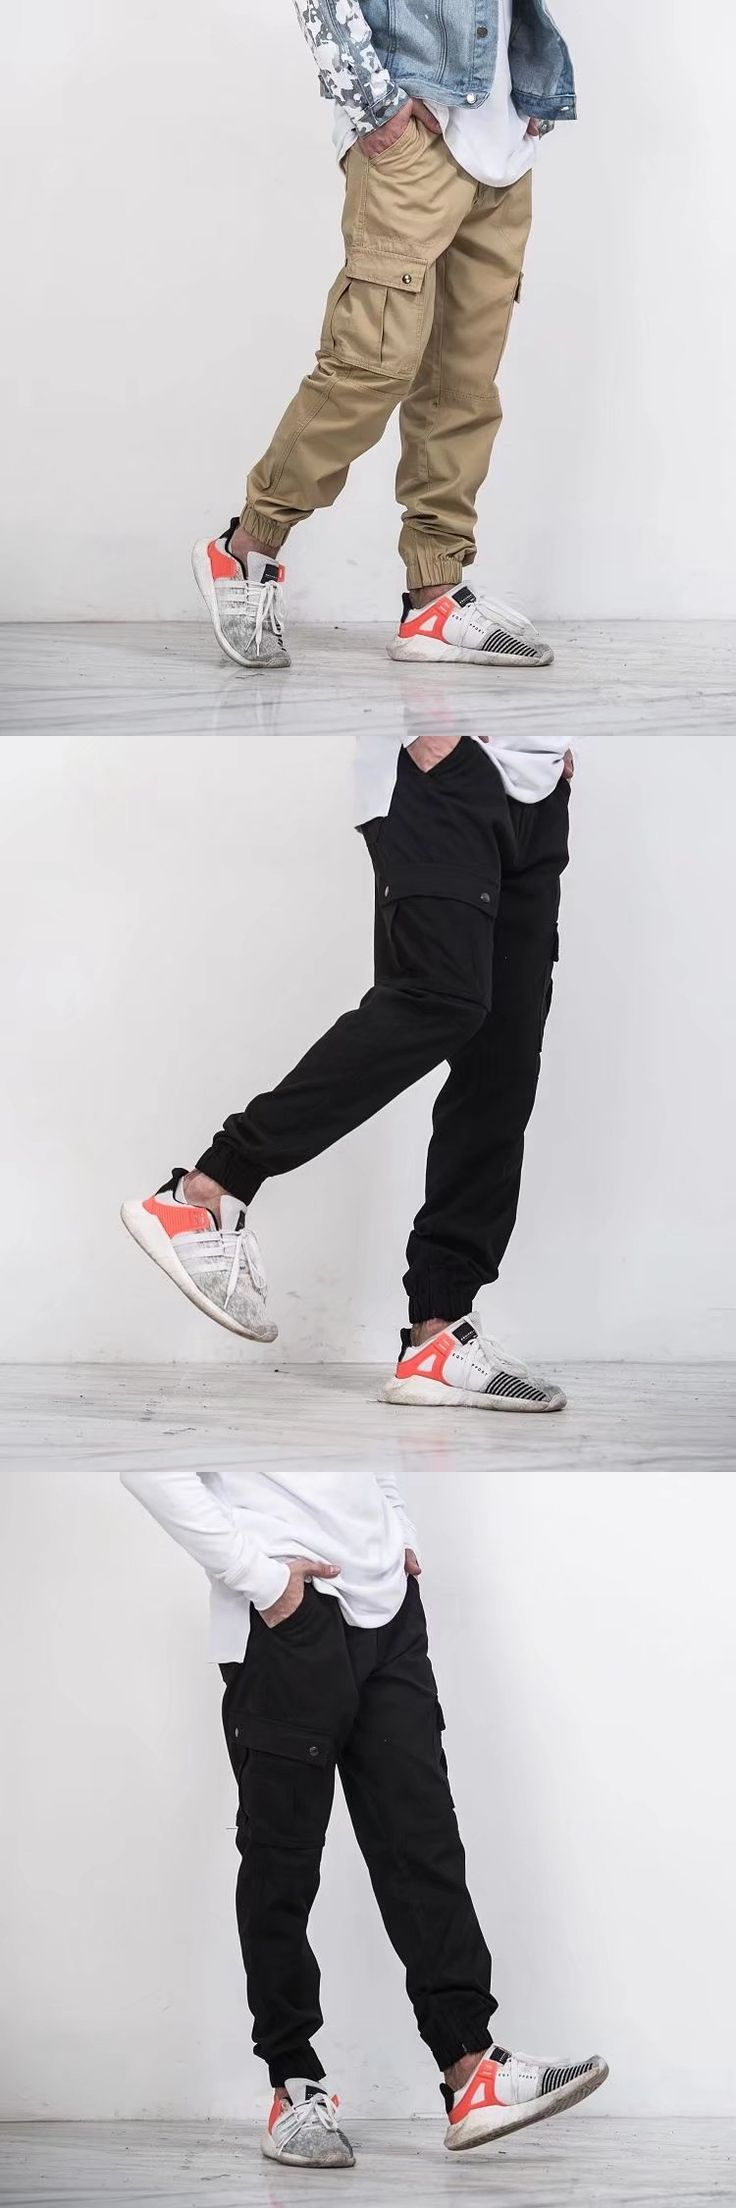 high quality 2017 New Ankle banded pants joggers Full Length Pants Men hip hop Casual sweatpants men overall wear hip hop